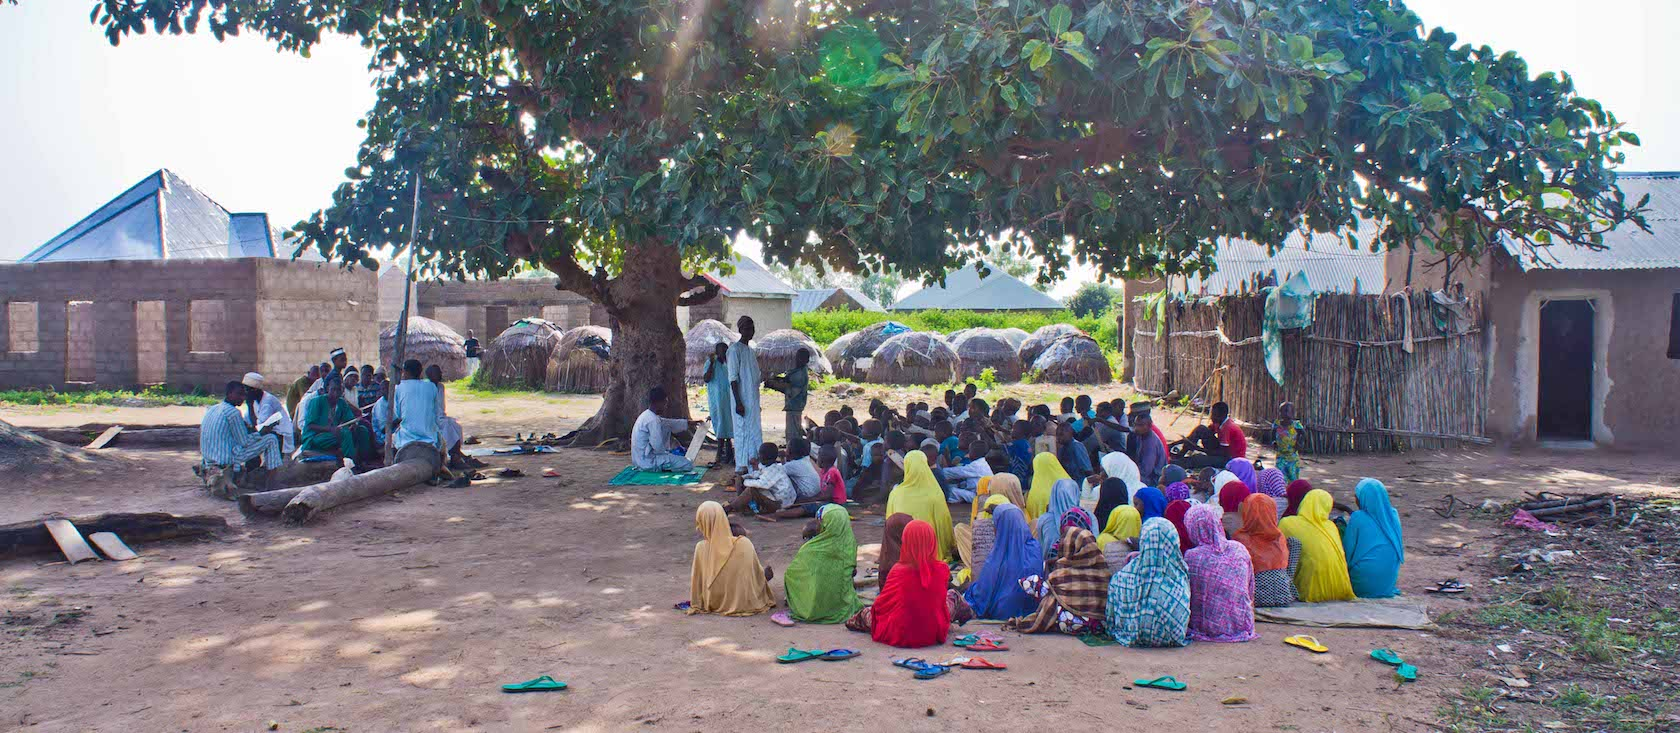 Fura-da-nono: Dialogue Between Farmers And Herders